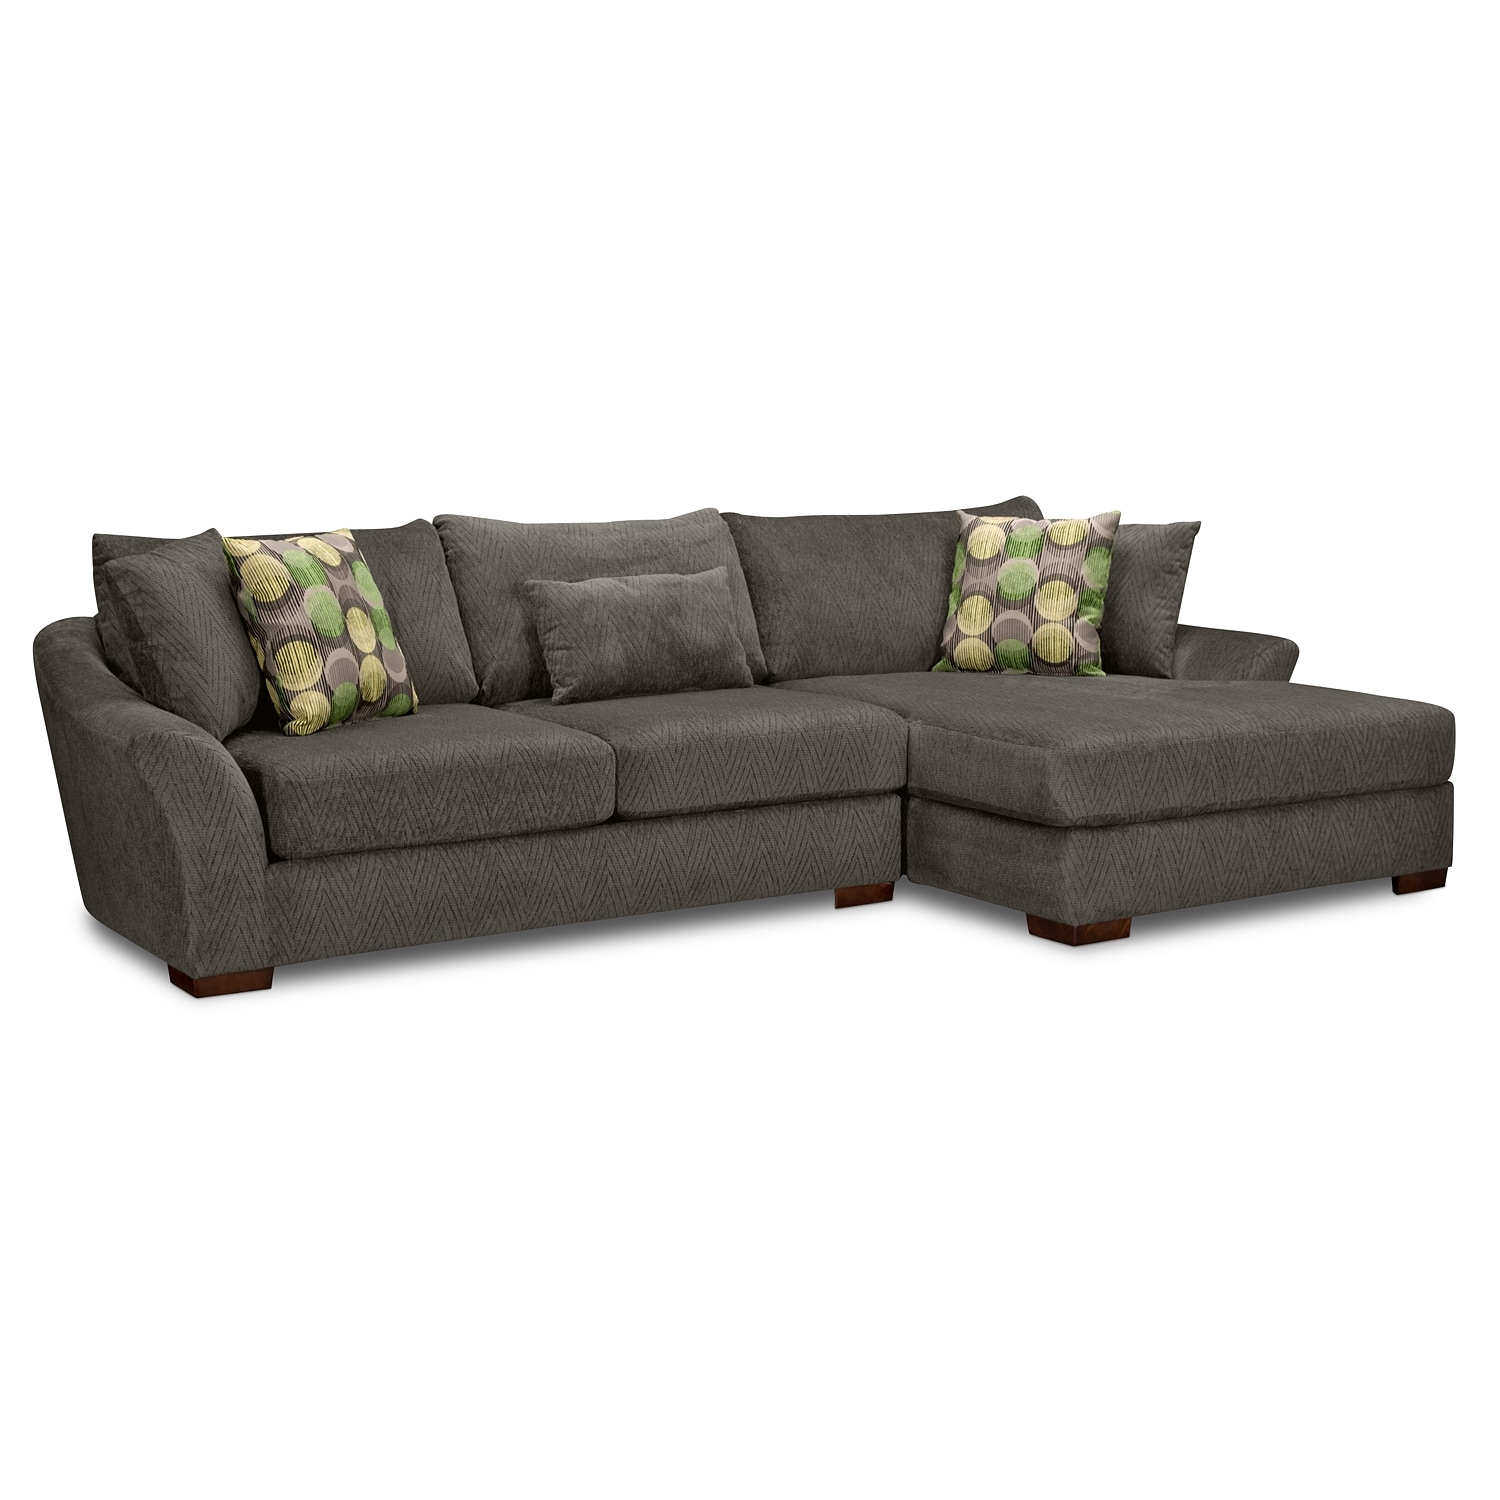 Oasis Upholstery 2 Pc Sectional Reverse Value City  : 269529 from valuecity.com size 1500 x 1500 jpeg 453kB